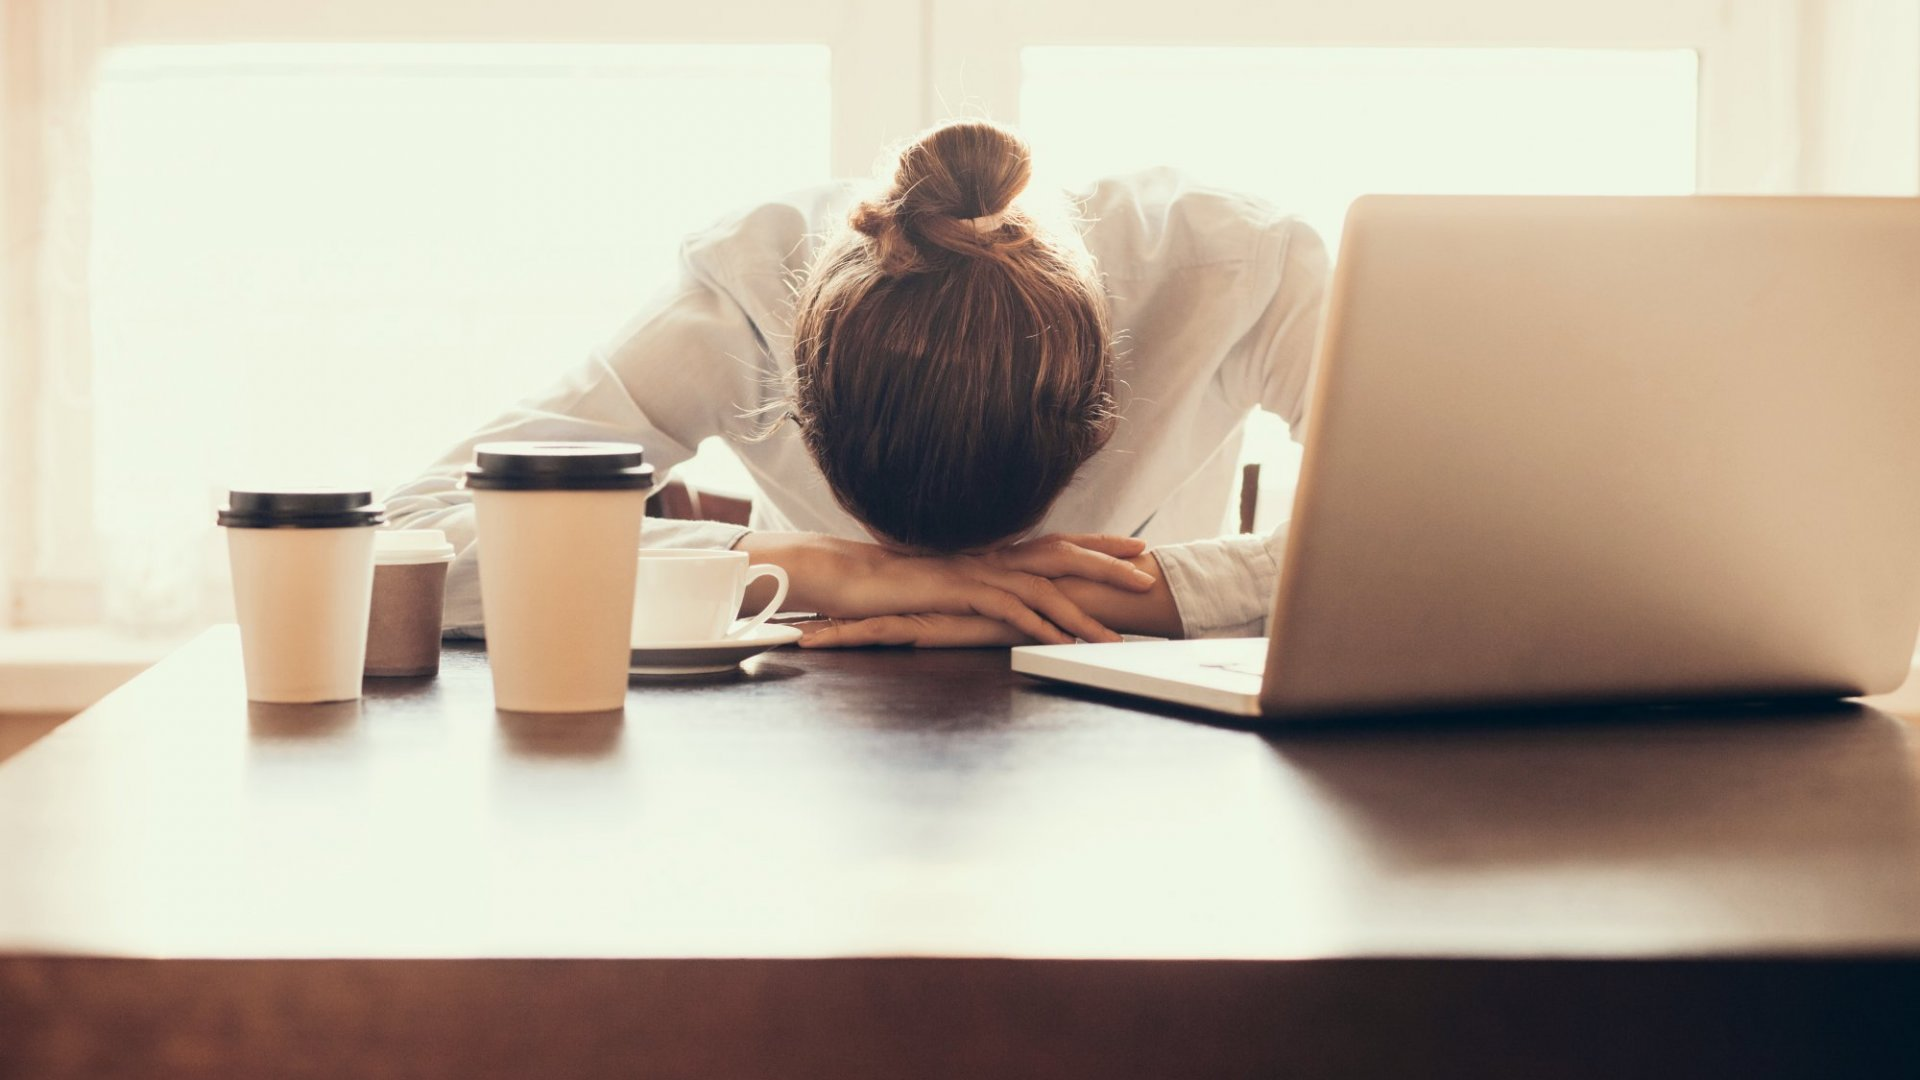 Is Workaholism Ruining Your Life? 5 Ways to Overcome Your Problem